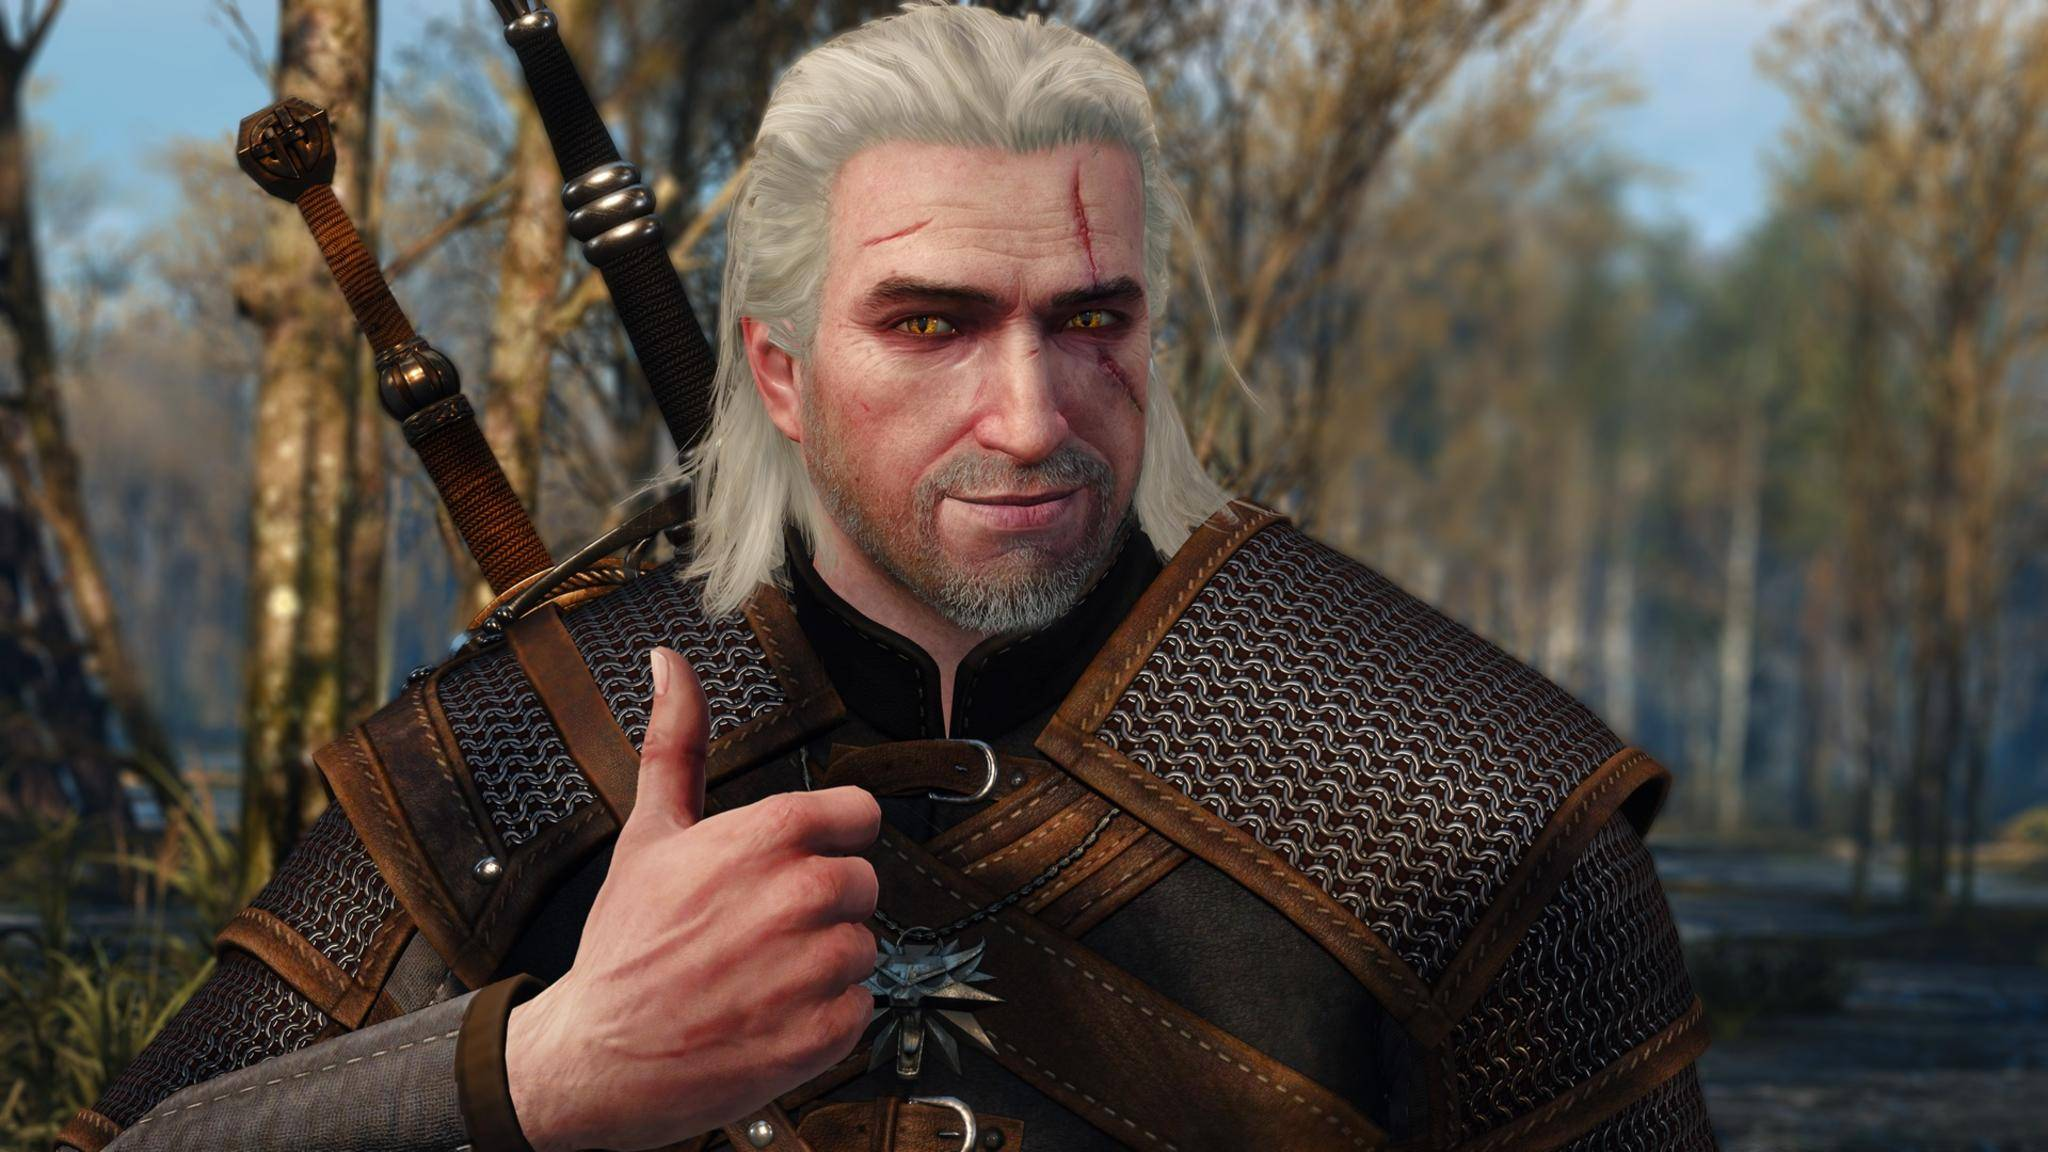 Toss a coin to your Witcher!